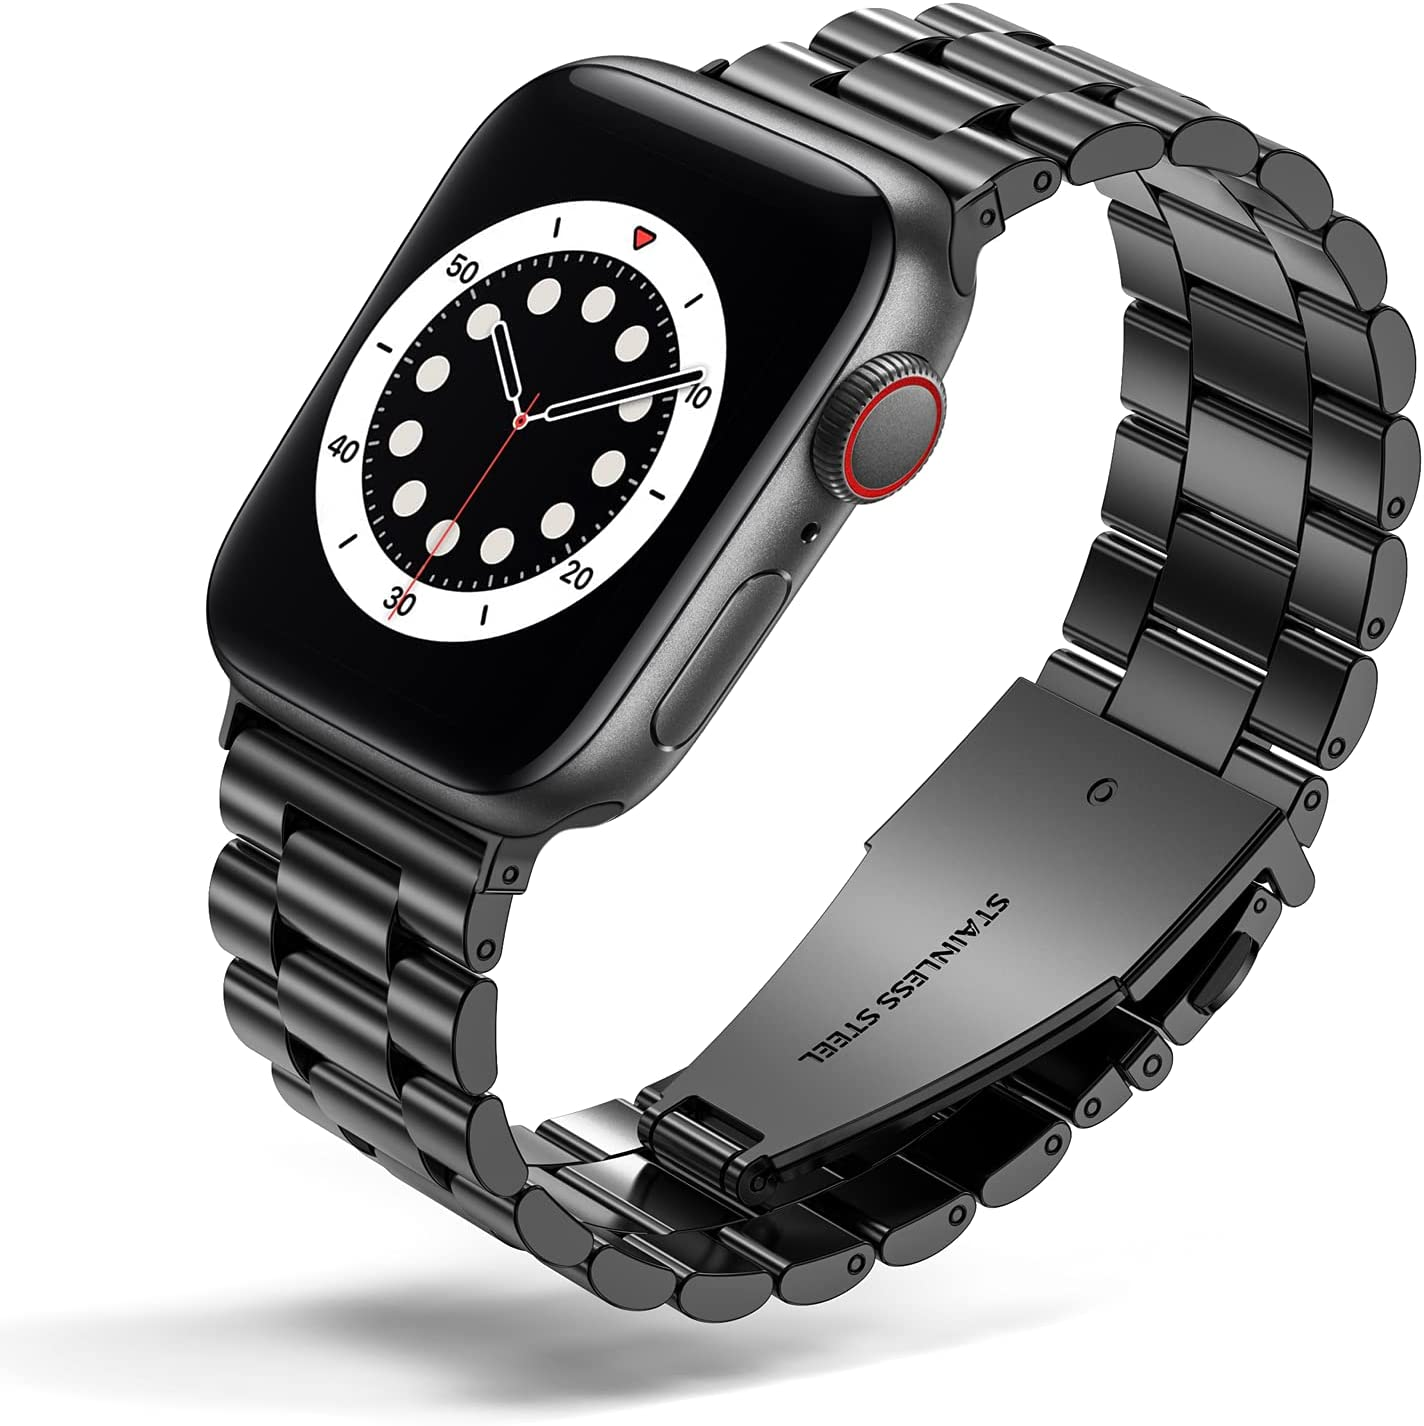 WESADN Compatible with Apple Watch Band 38mm 40mm for Women Men,Business Stainless Steel Metal Wristband, Replacement Adjustable Strap with Metal Buckle for iWatch SE Series 6 5 4 3 2 1 38mm 40mm